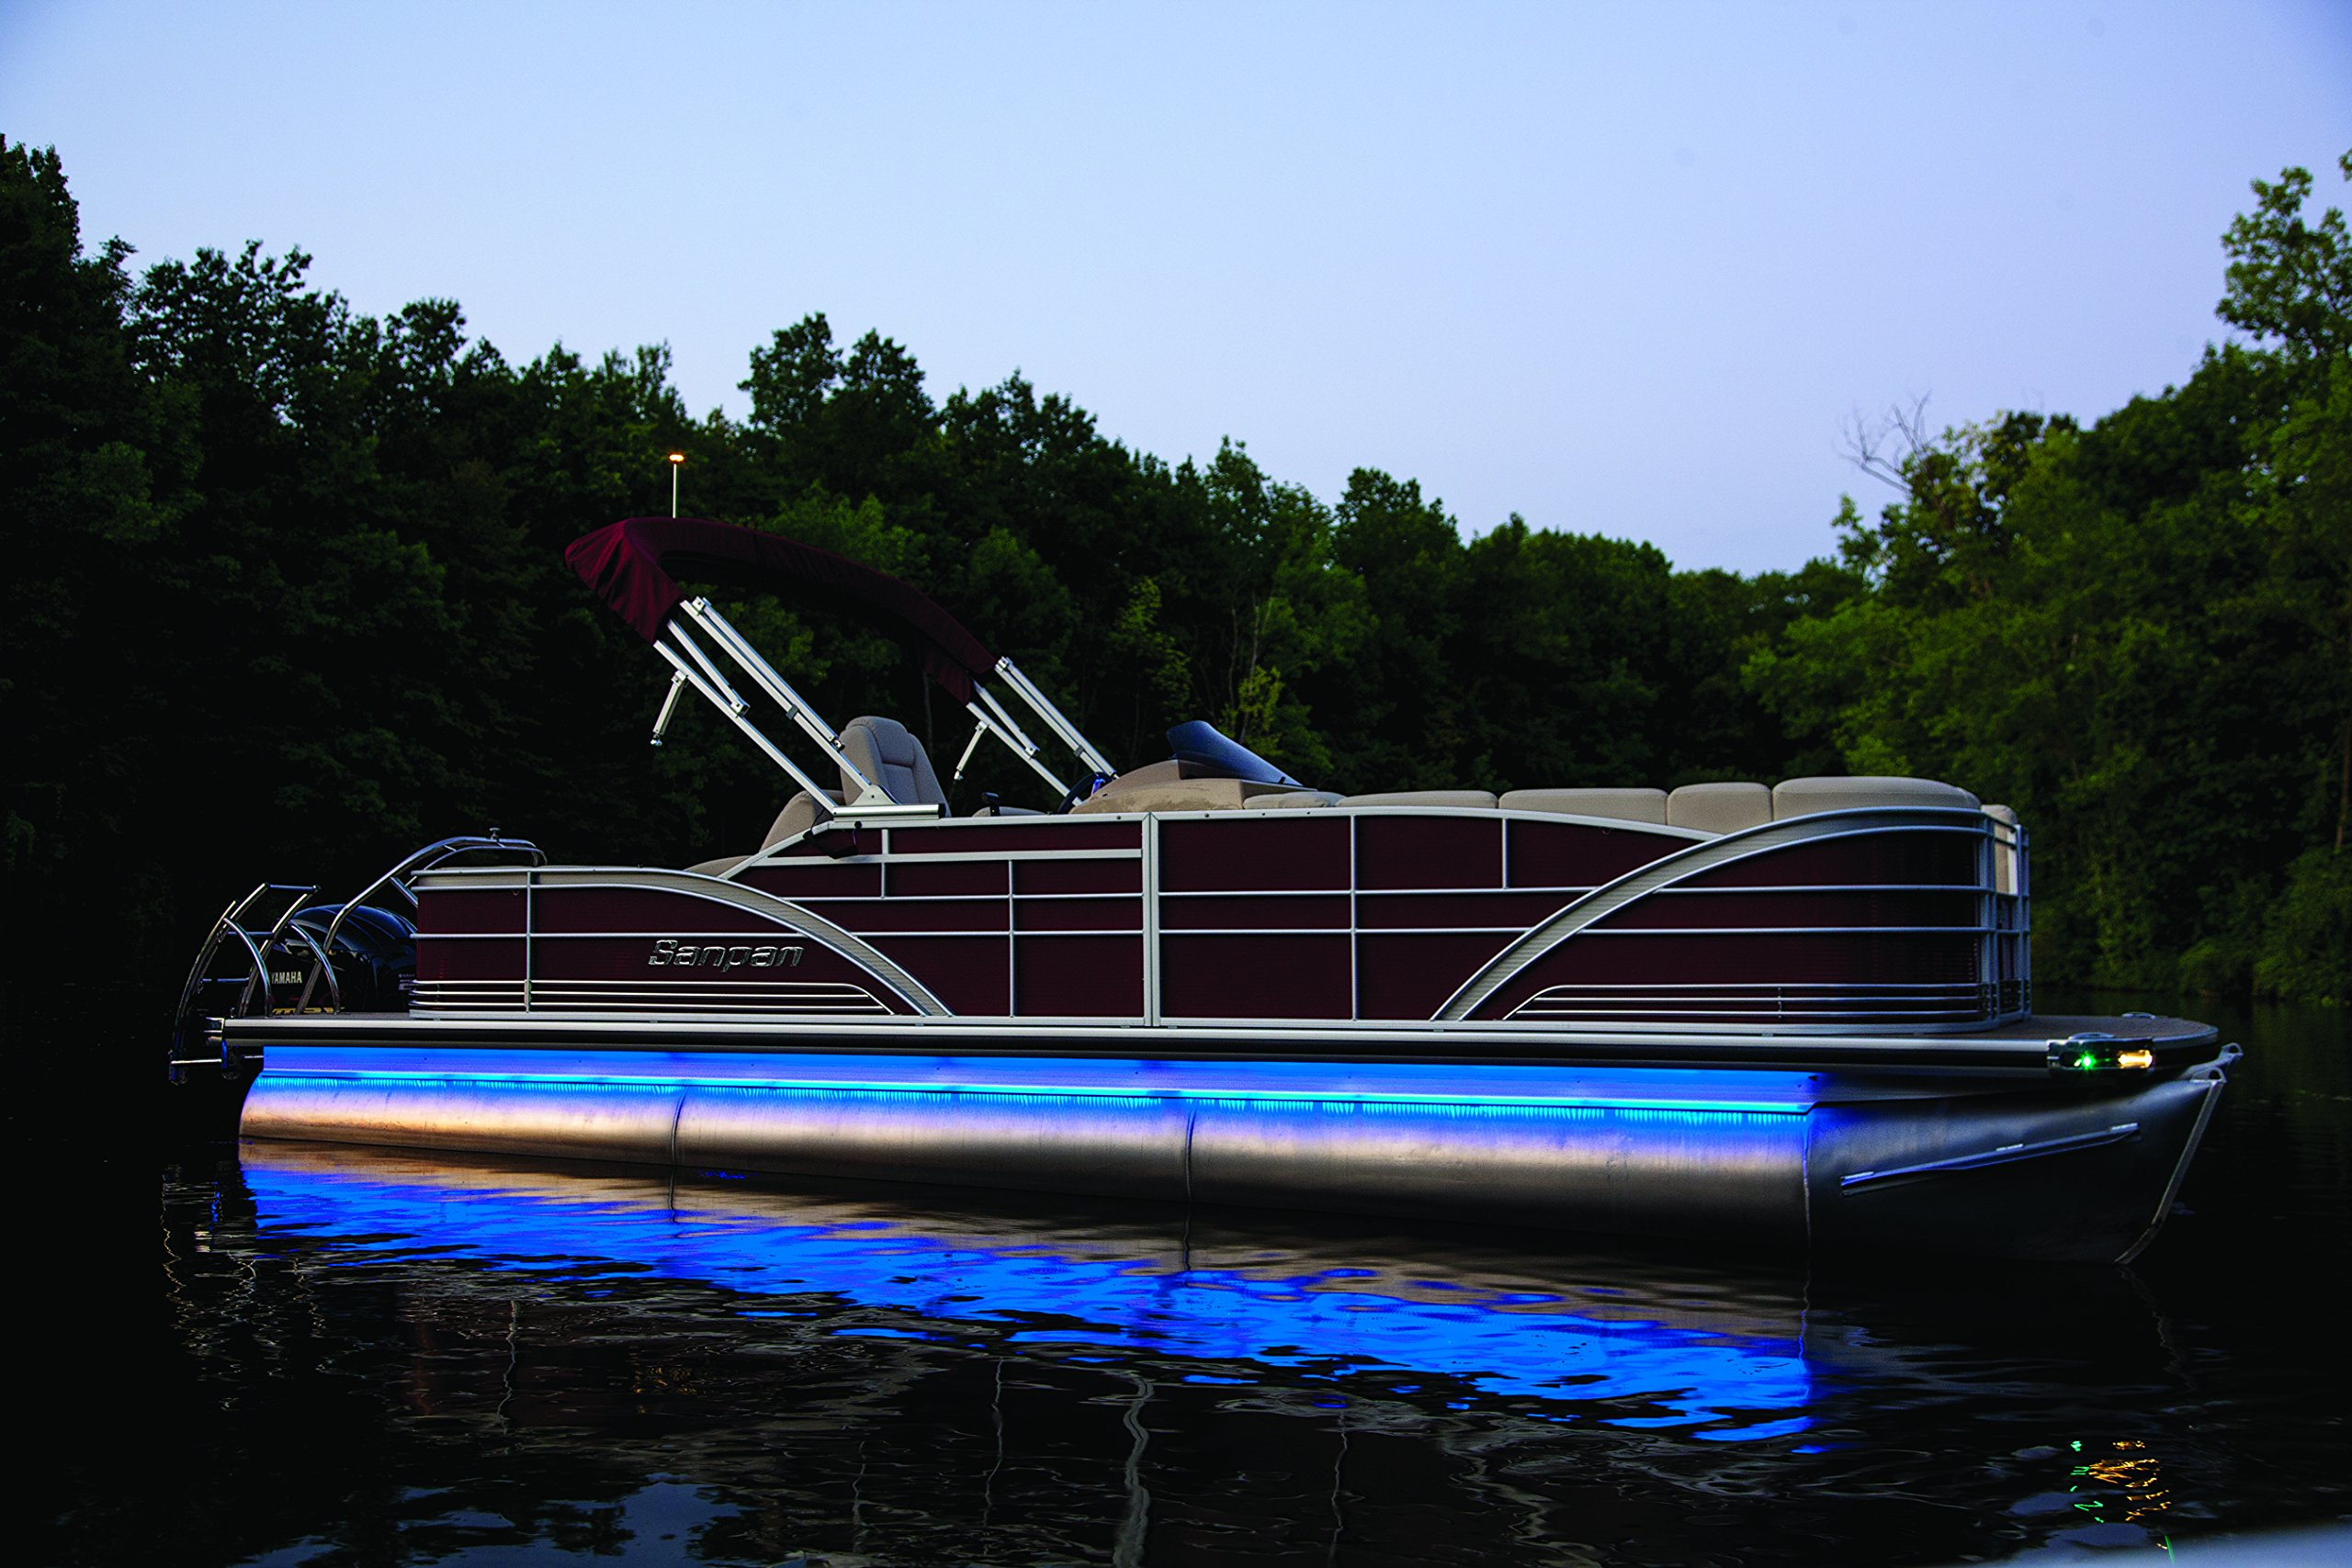 PONTOON lighting kit - UNIVERSAL will fit any pontoon or boat - Remote Control - Color Selectable - Under Deck or Around the hull - Red Green Blue White Orange Purple more... by CH